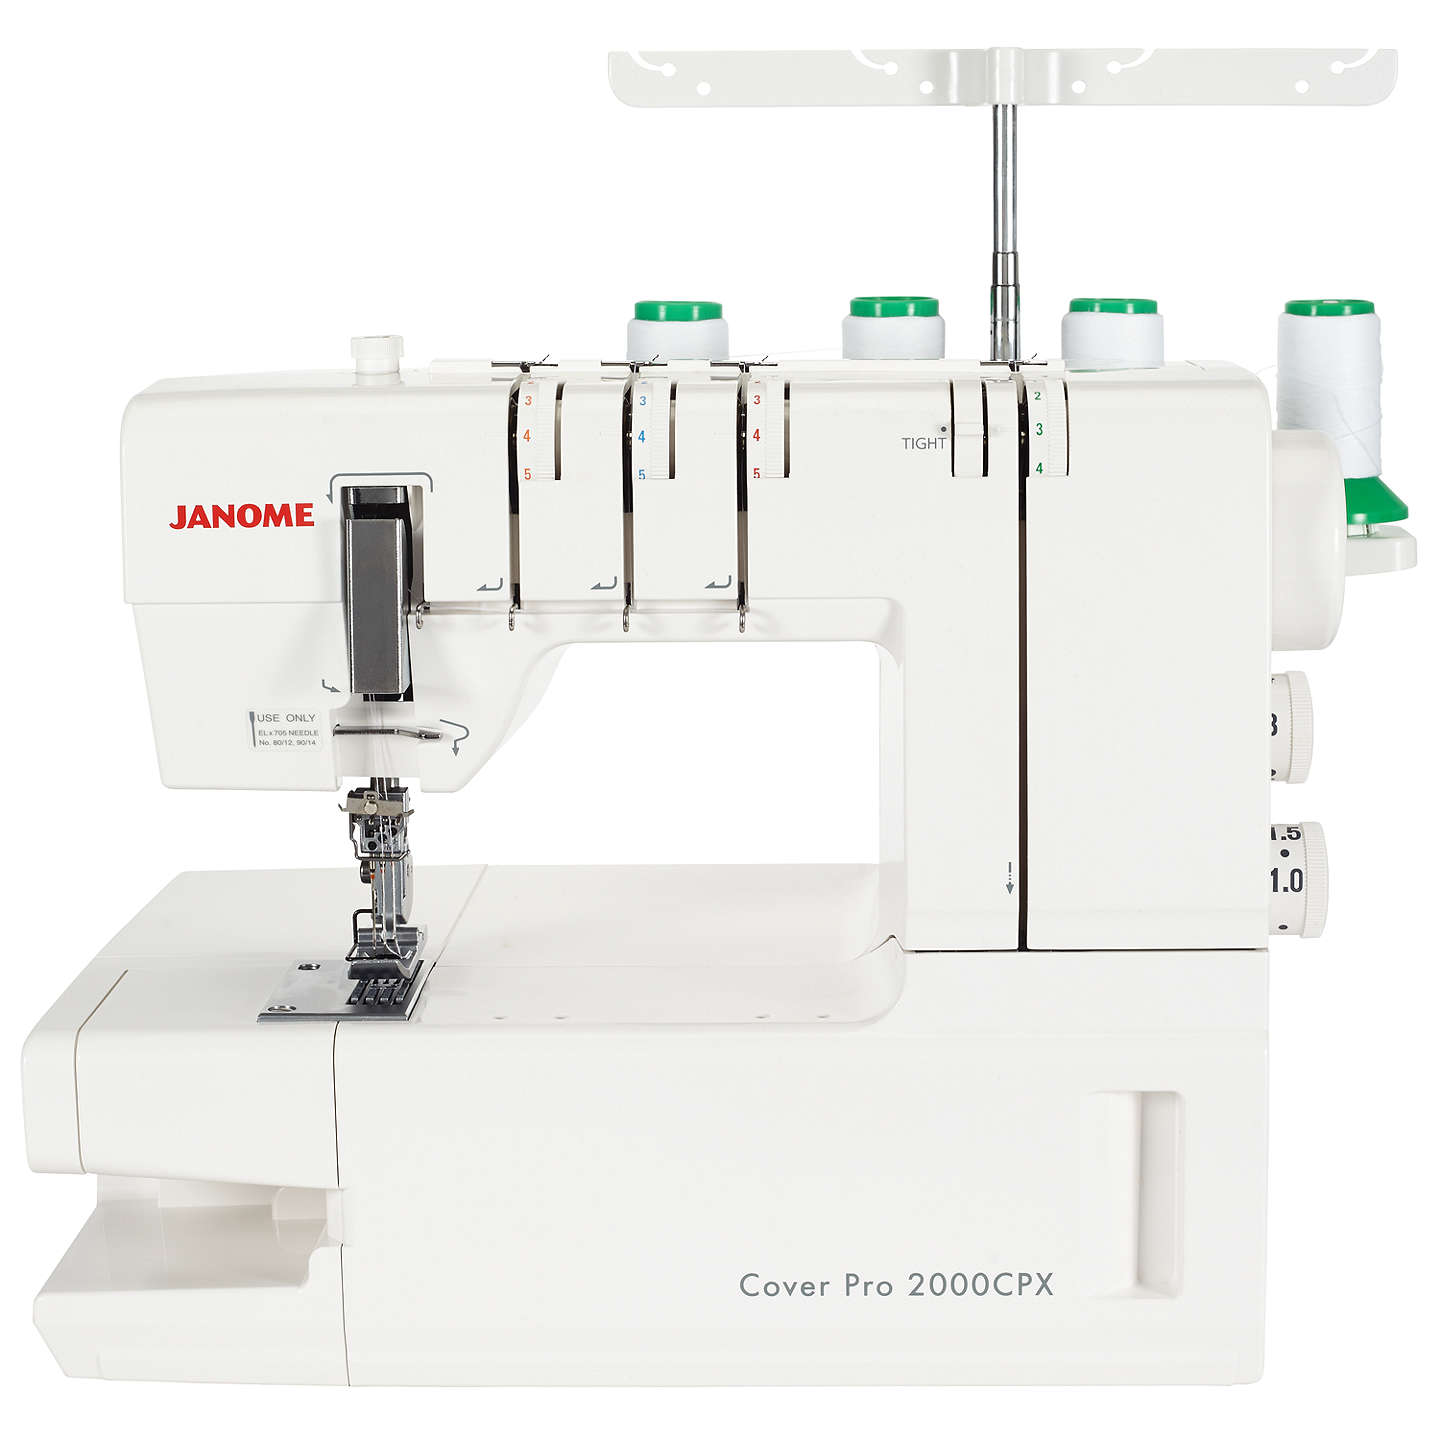 Janome Coverpro 2000CPX Coverstitch Hemmer Machine at John Lewis